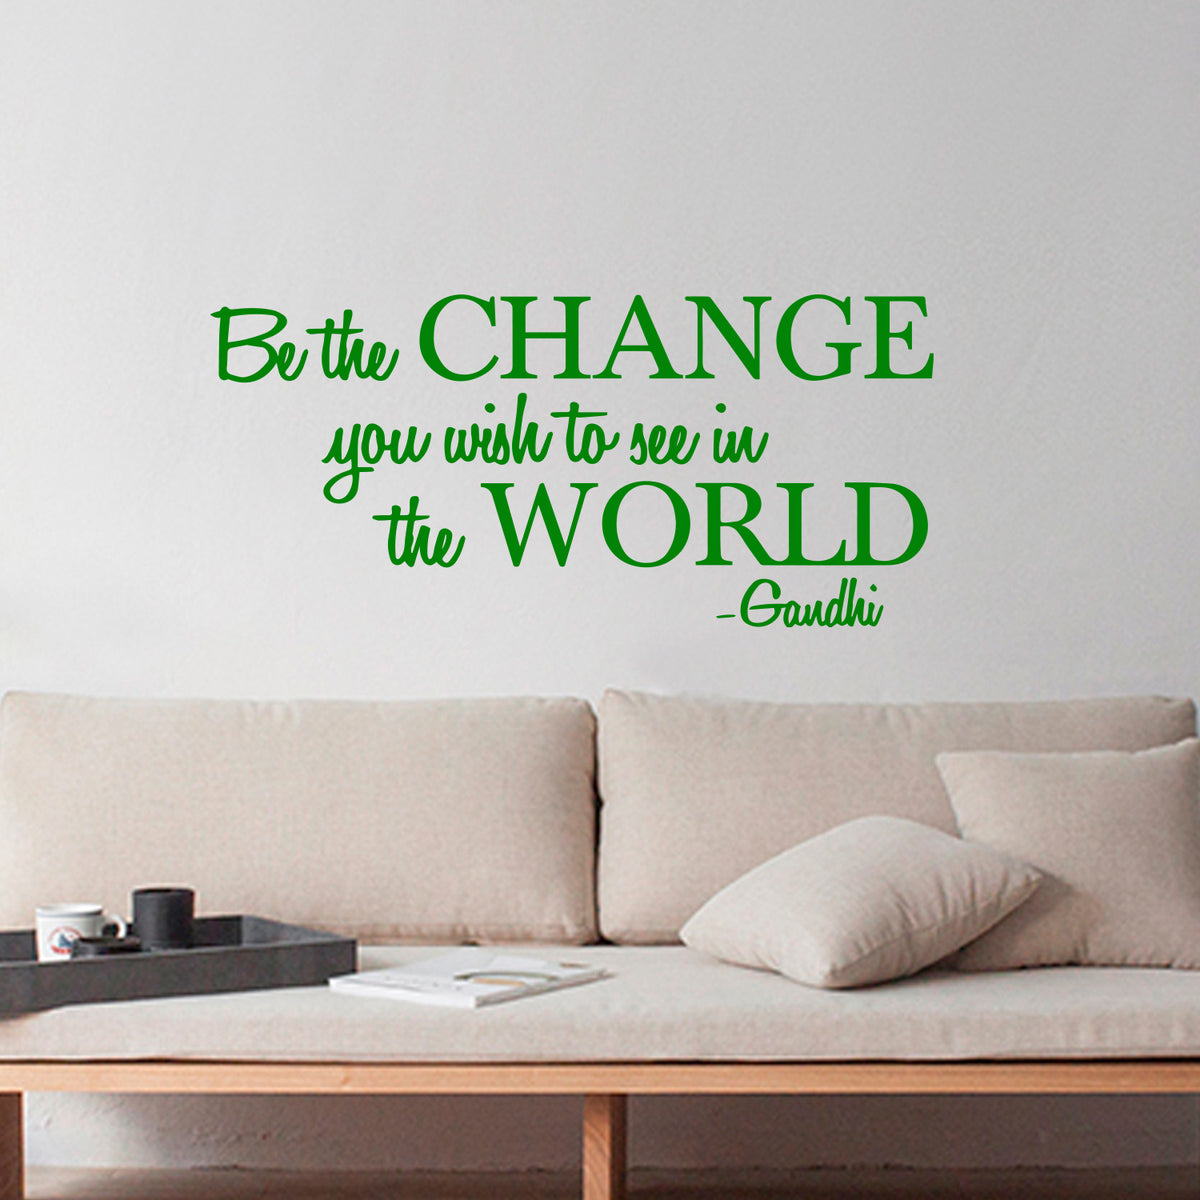 Vinyl Wall Decal Sticker Be The Change You Wish To See In The World Imprinted Designs